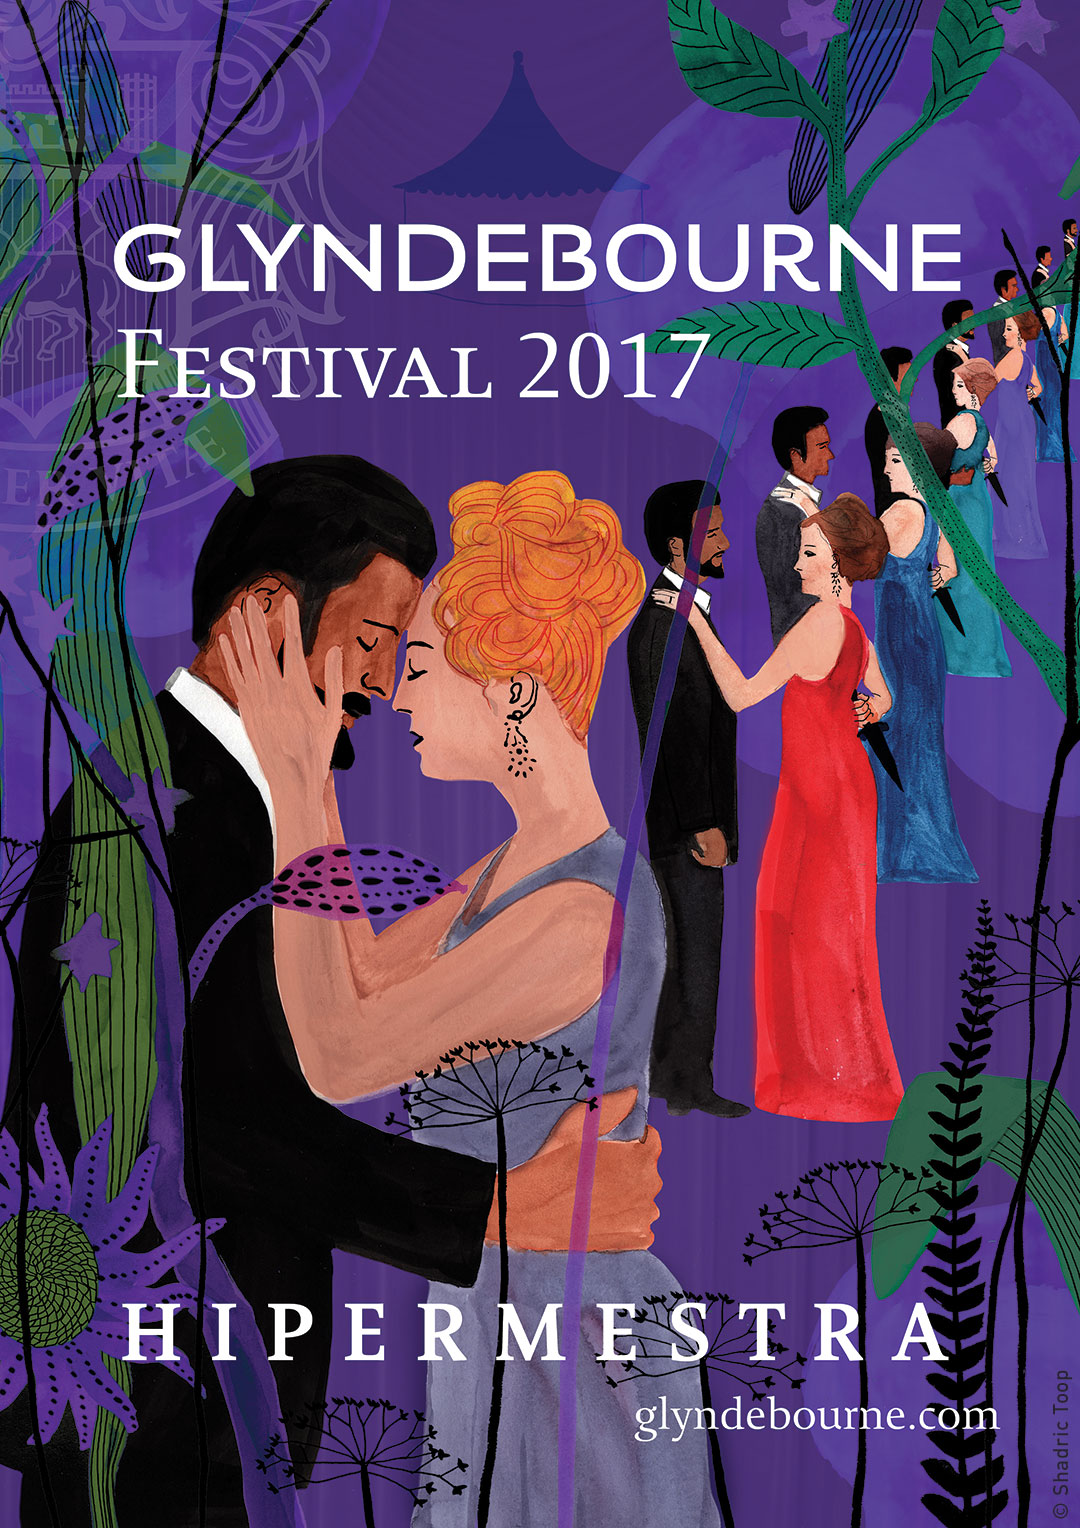 An illustrated poster for Glyndebourne Festival featuring Violetta, featuring characters from the Francesco Cavalli opera Hipermestra, in a abstract design of plants which represent the summer gardens at Glyndebourne - work by Shadric Toop